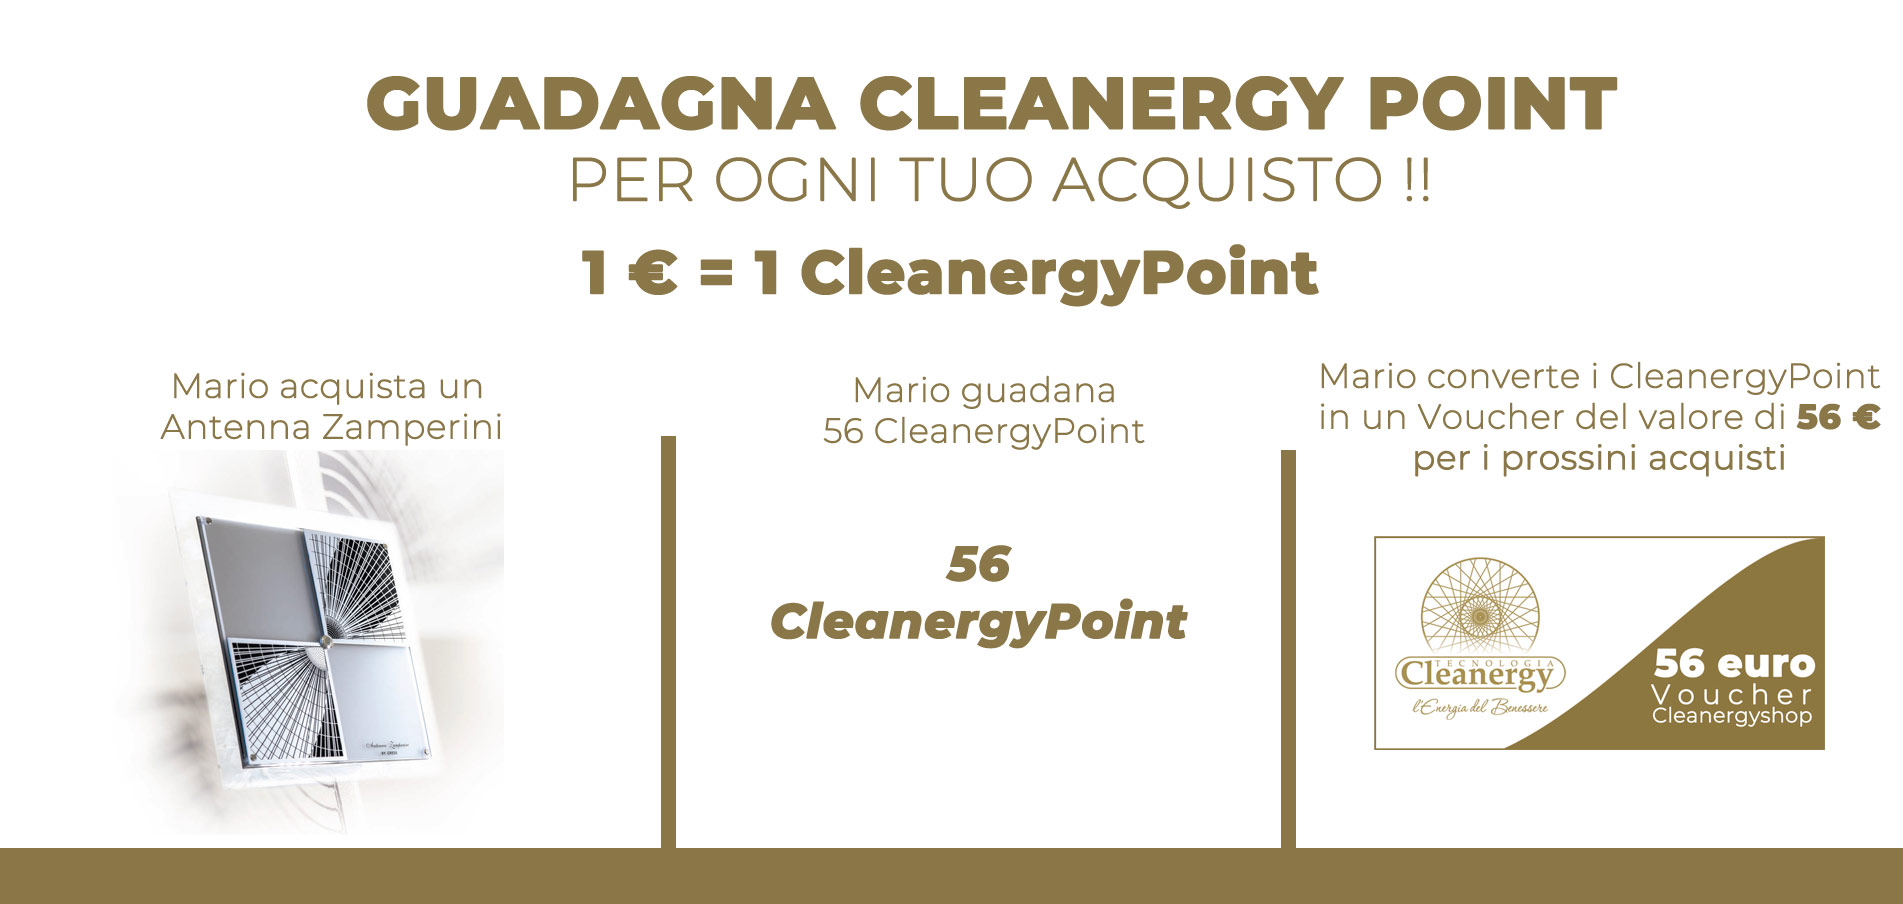 Cleanergypoint